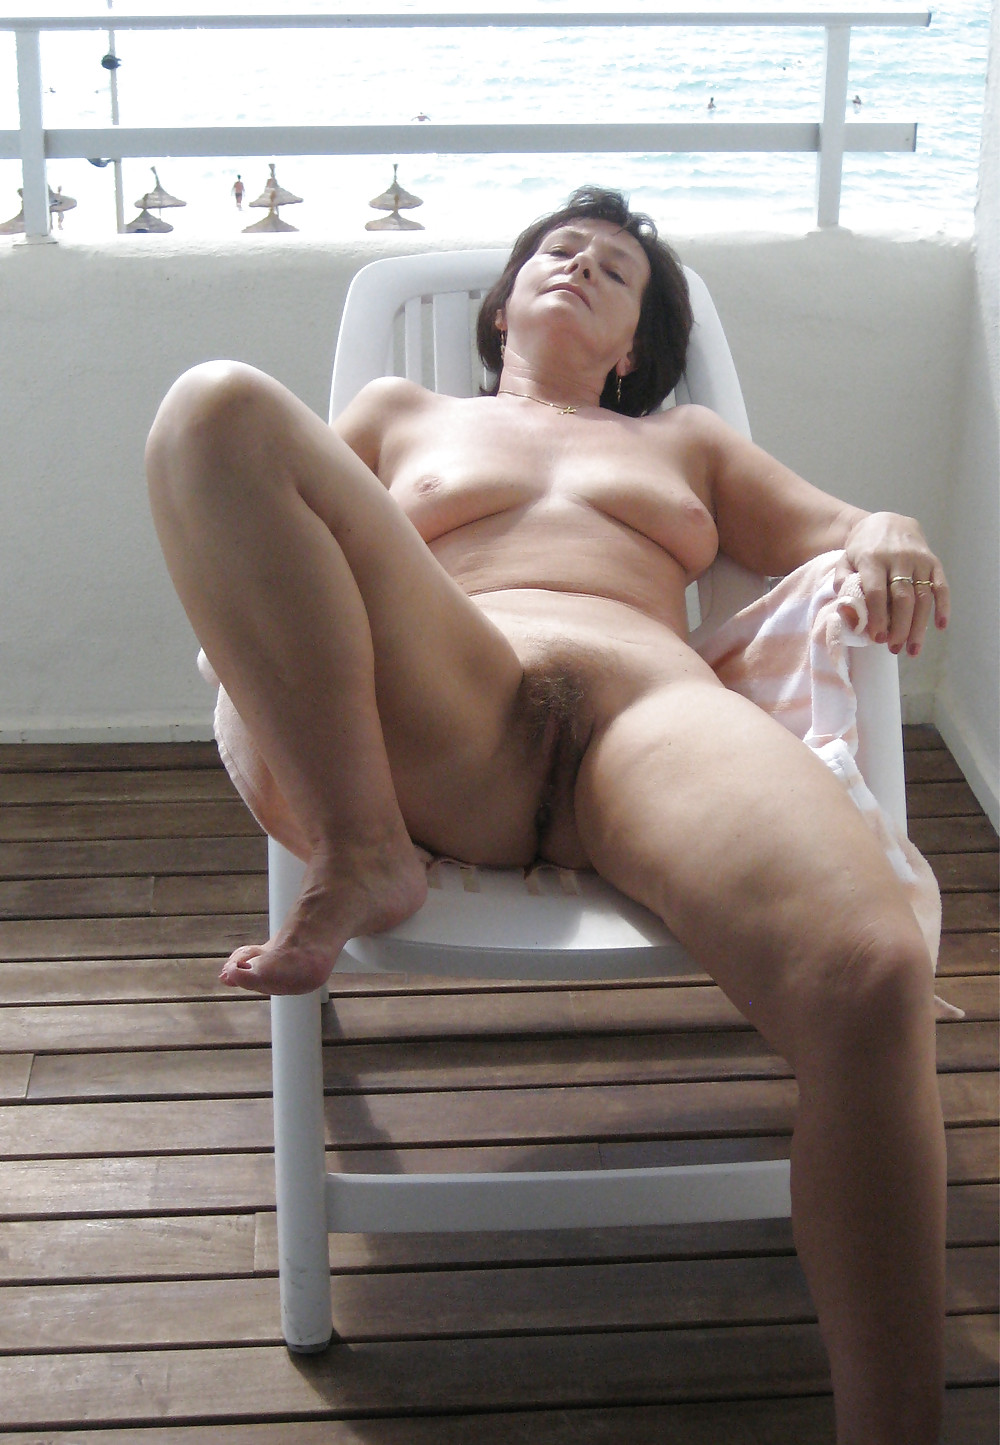 Naked mom caught nude